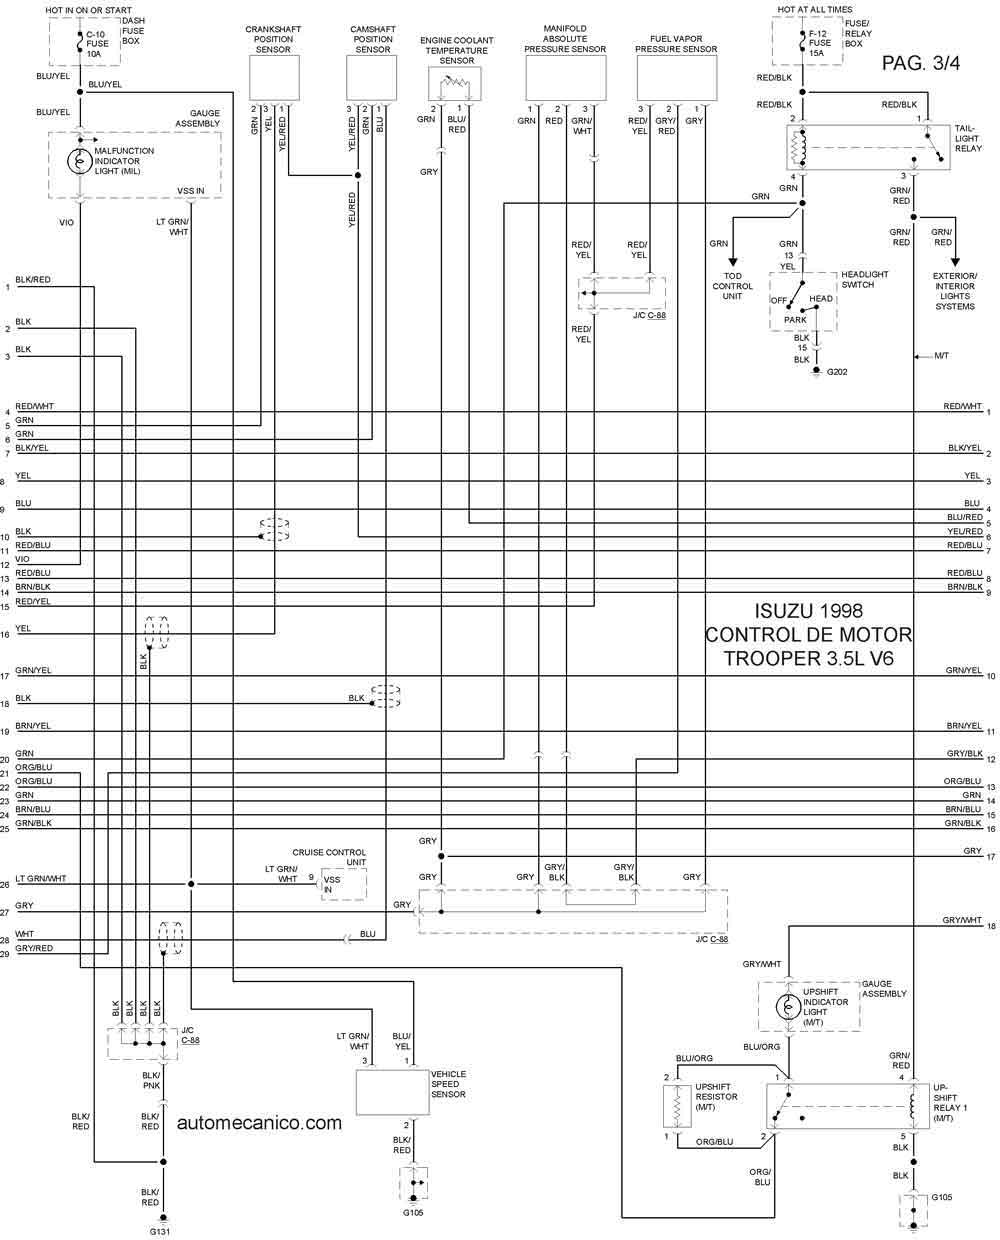 Isuzu Rodeo Sport Engine Diagram furthermore RepairGuideContent together with 93 Ford F150 Wiring Diagram further Isuzo9802 further P 0900c1528006286c. on isuzu trooper 2